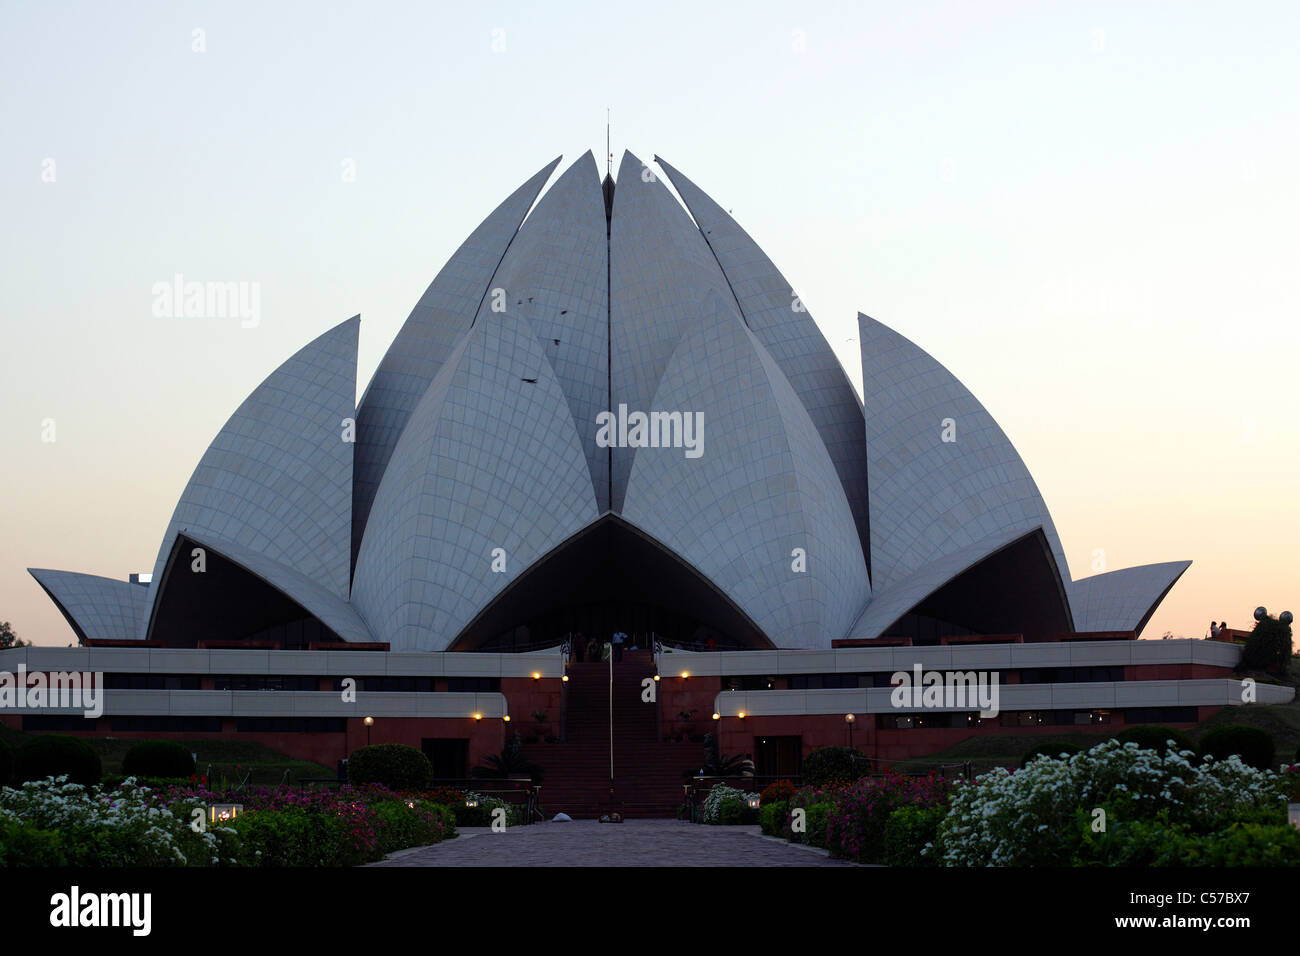 Modern Architecture Of New Delhi lotus temple(bahá'í temple, new delhi) is one of the best examples